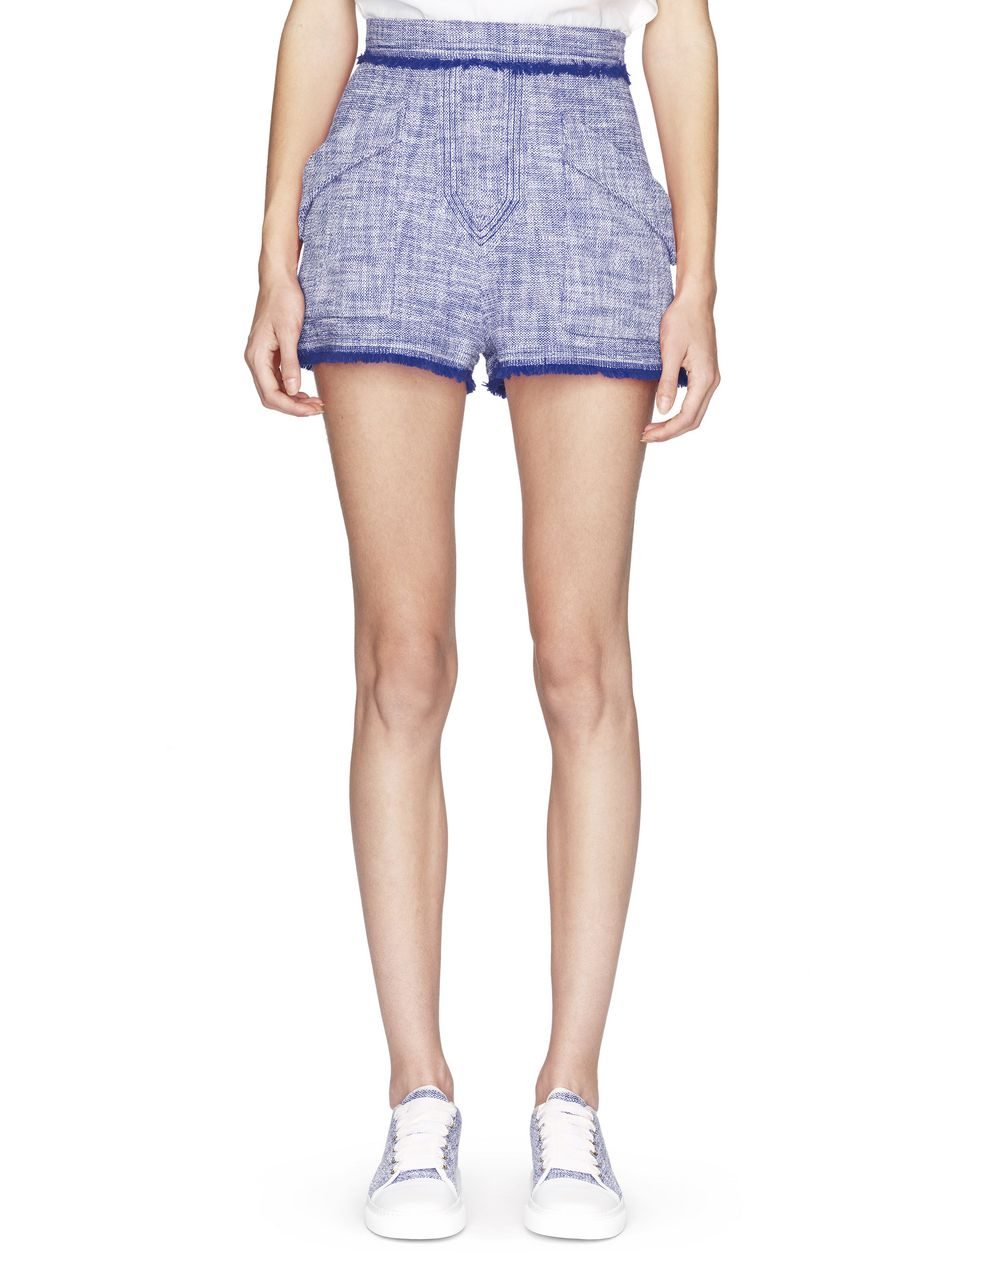 LIGHTWEIGHT TWEED SHORTS - Lanvin